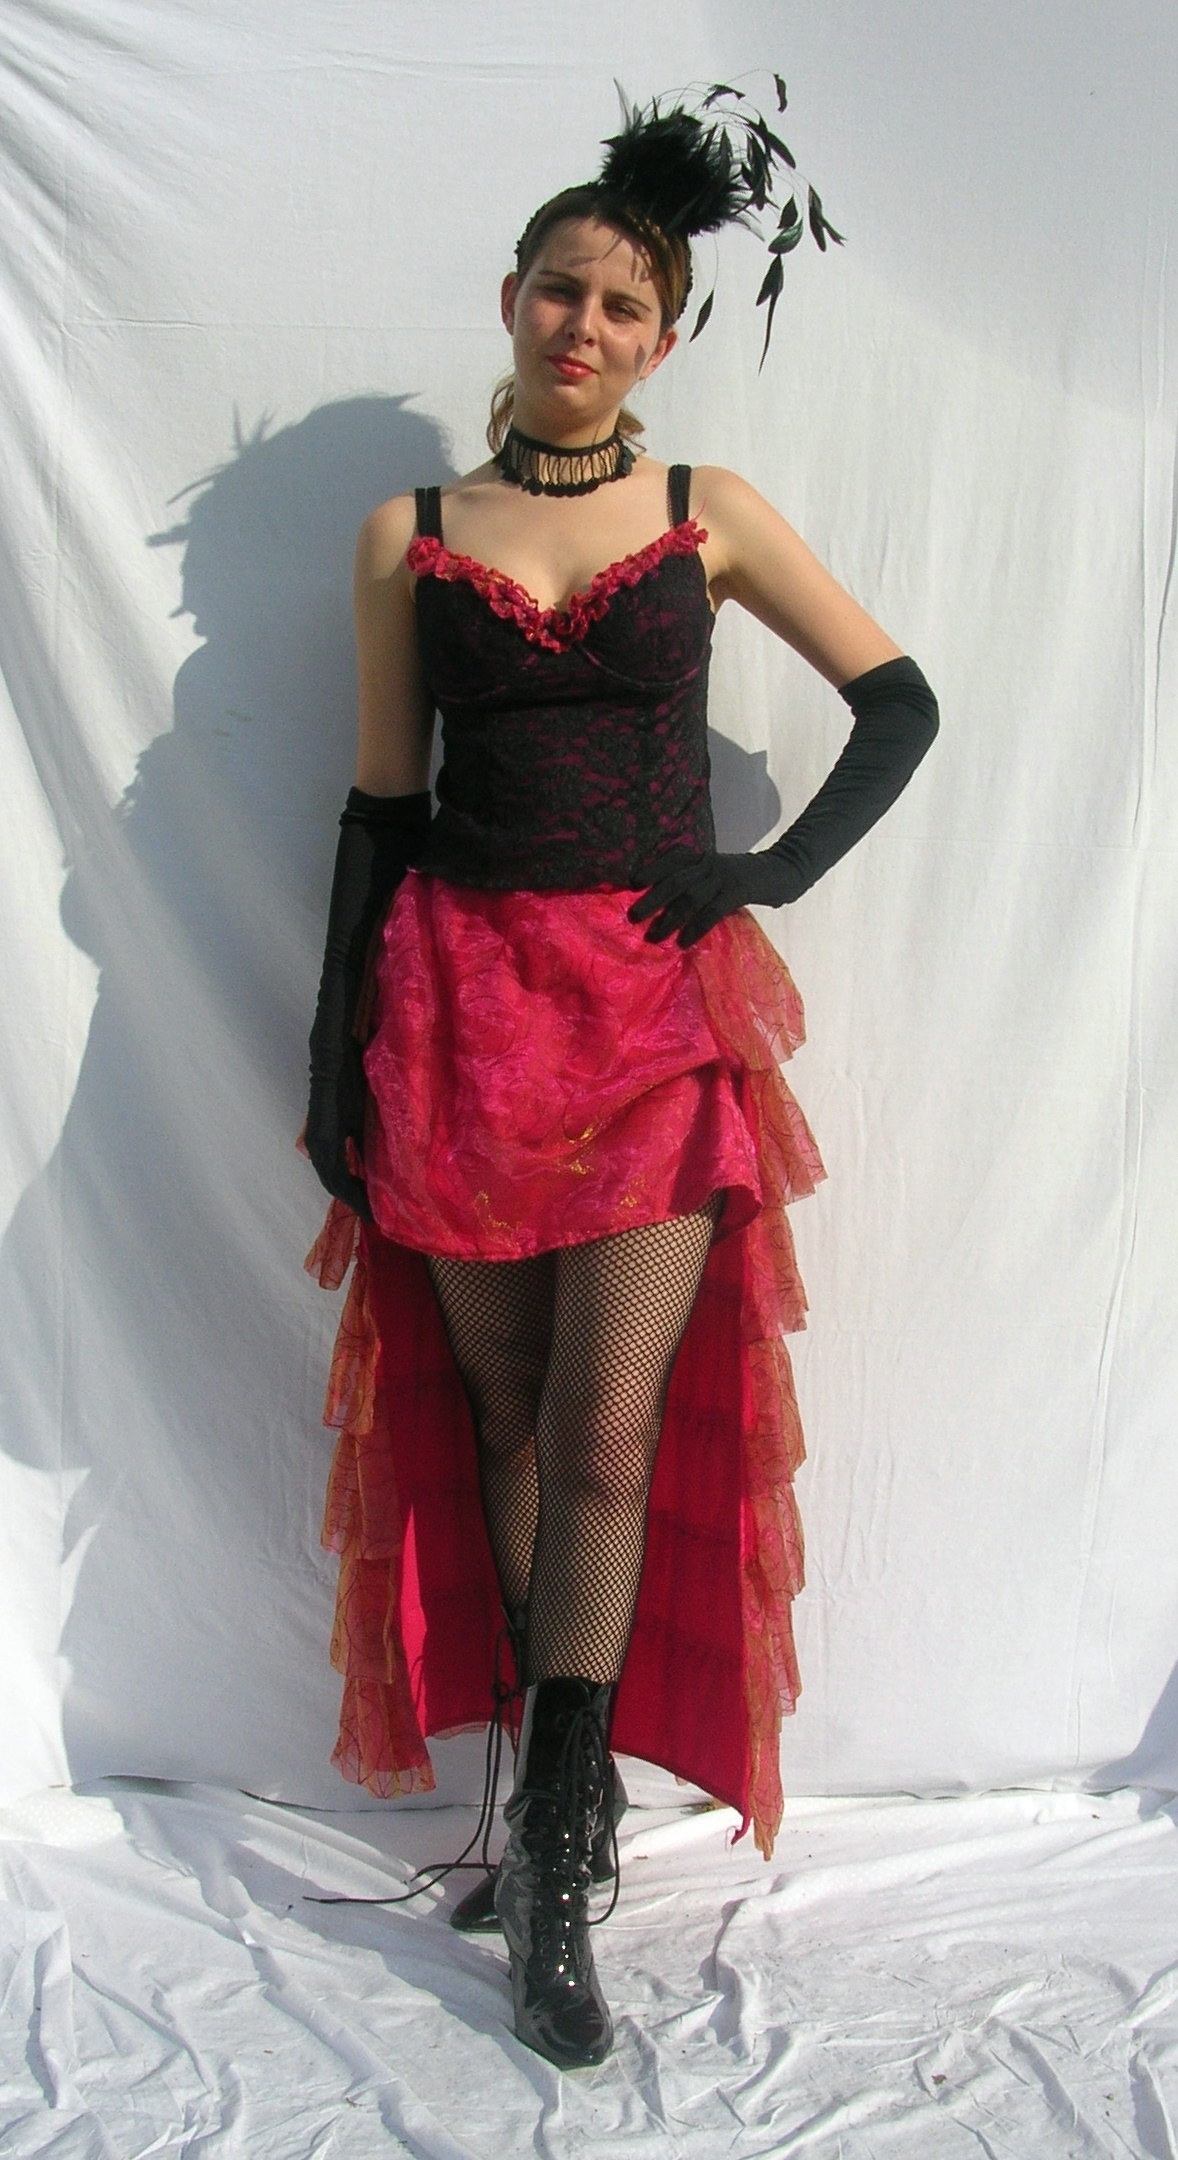 Miss-Kitty-Pink-and-Black-Saloon-girl